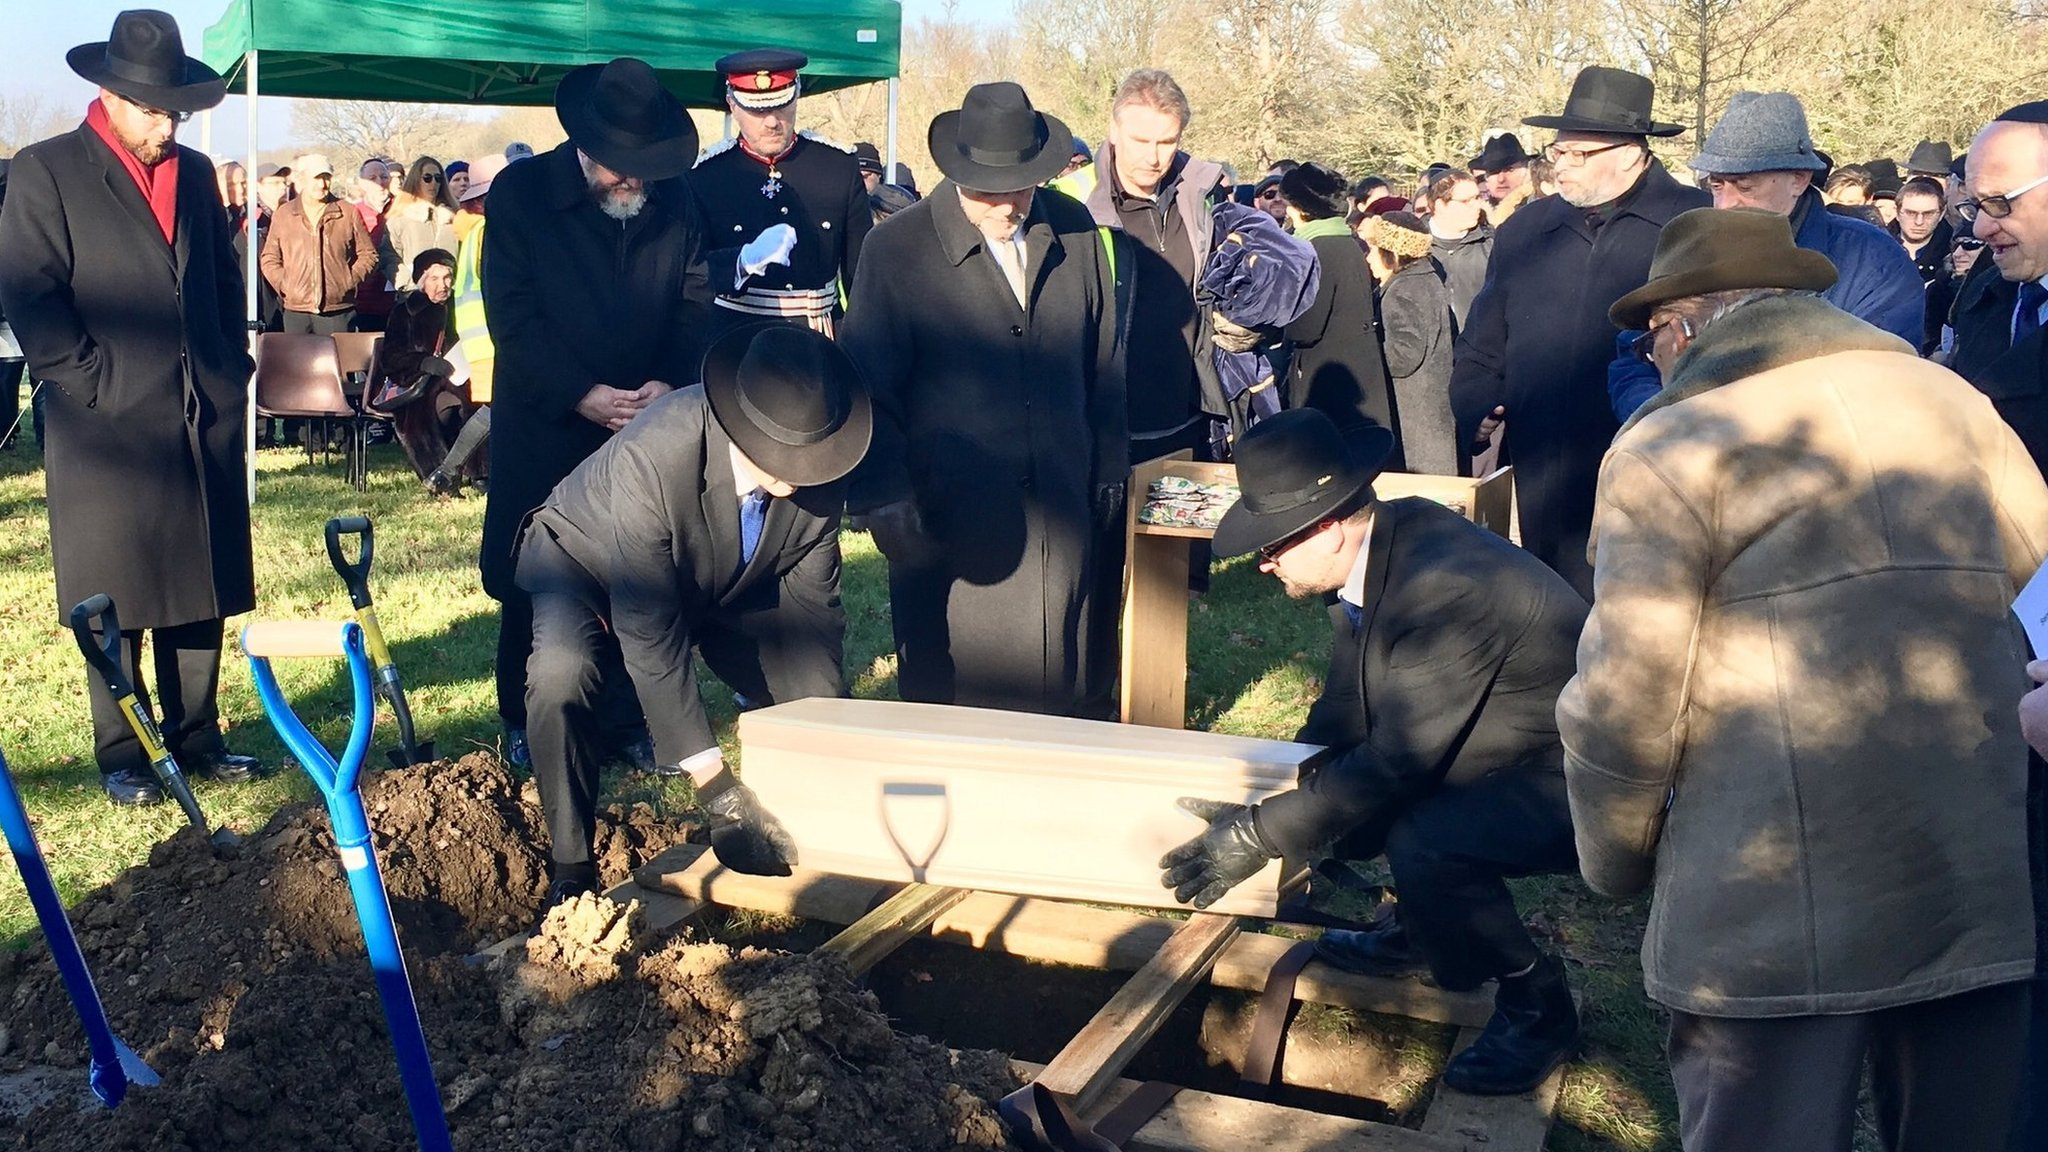 Holocaust victims funeral a reminder to 'confront racism'